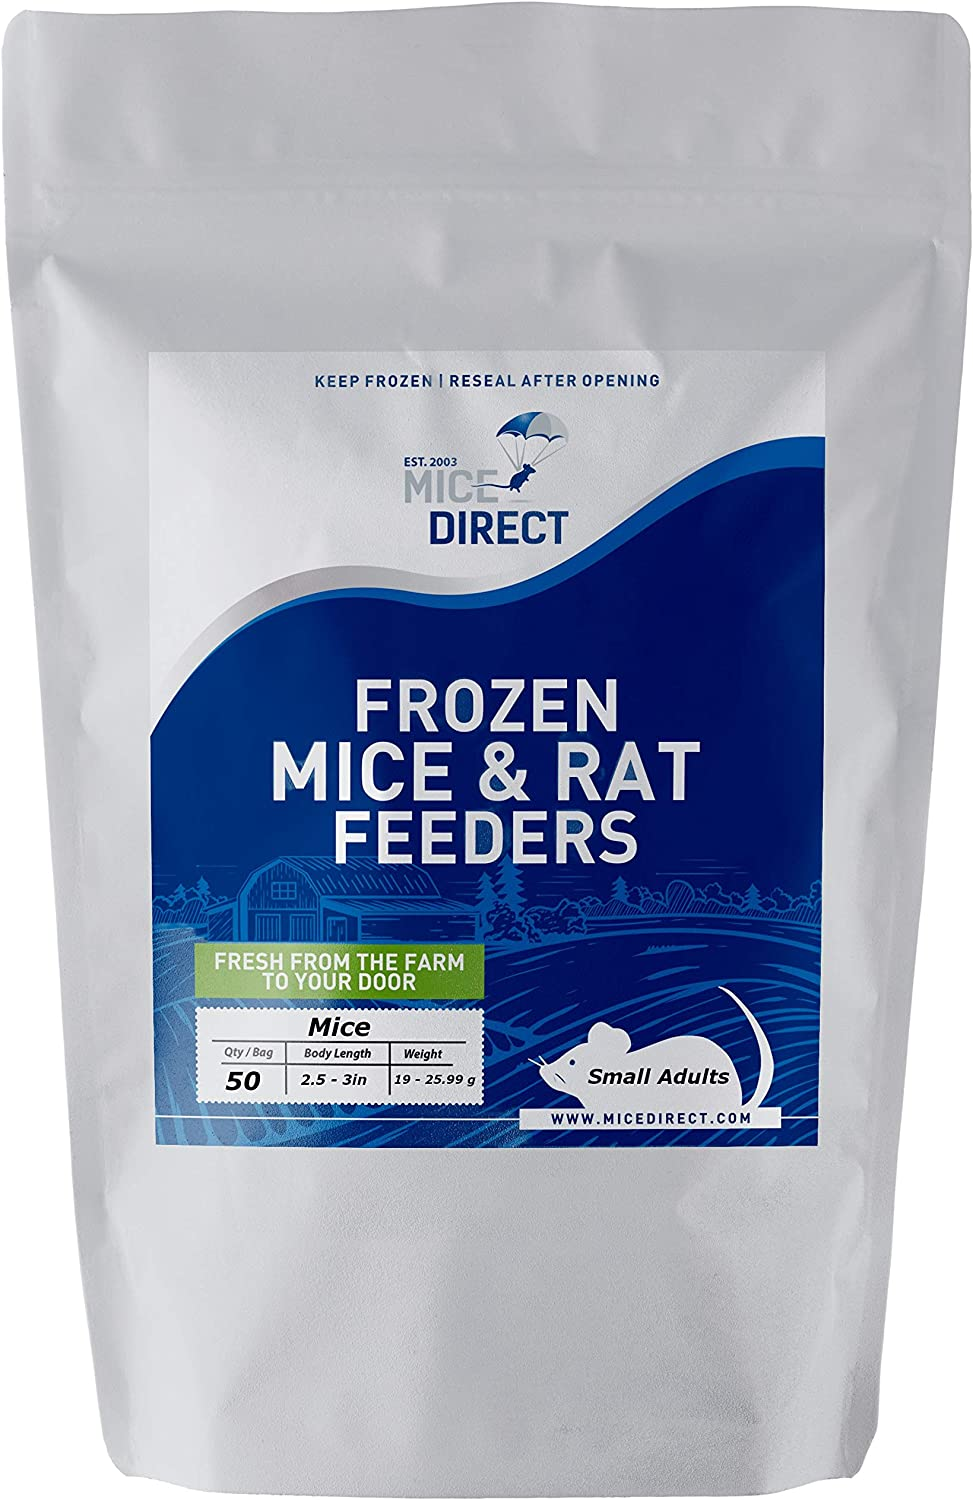 MiceDirect 50 Small Adult Mice: Pack of Frozen Small Adult Feeder Mice - Food for Corn Snakes, Ball Pythons, Lizards and Other Pet Reptiles - Freshest Snake Feed Supplies